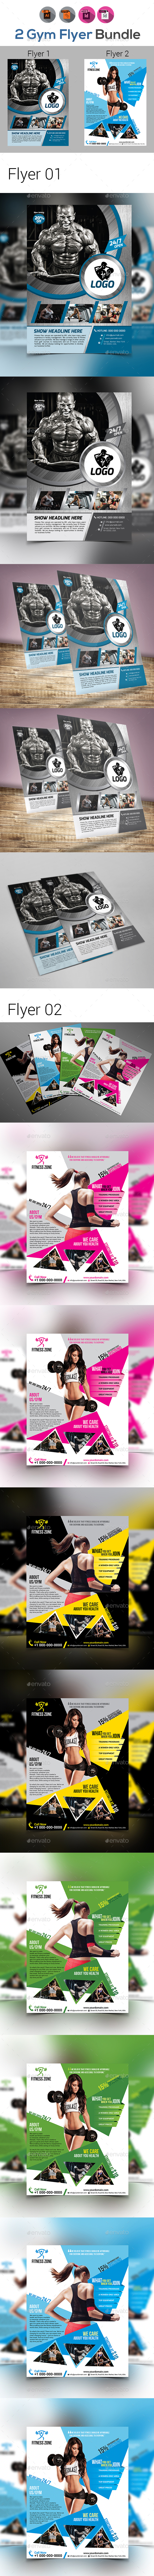 Fitness Flyer - Gym Flyer Bundle - Flyers Print Templates